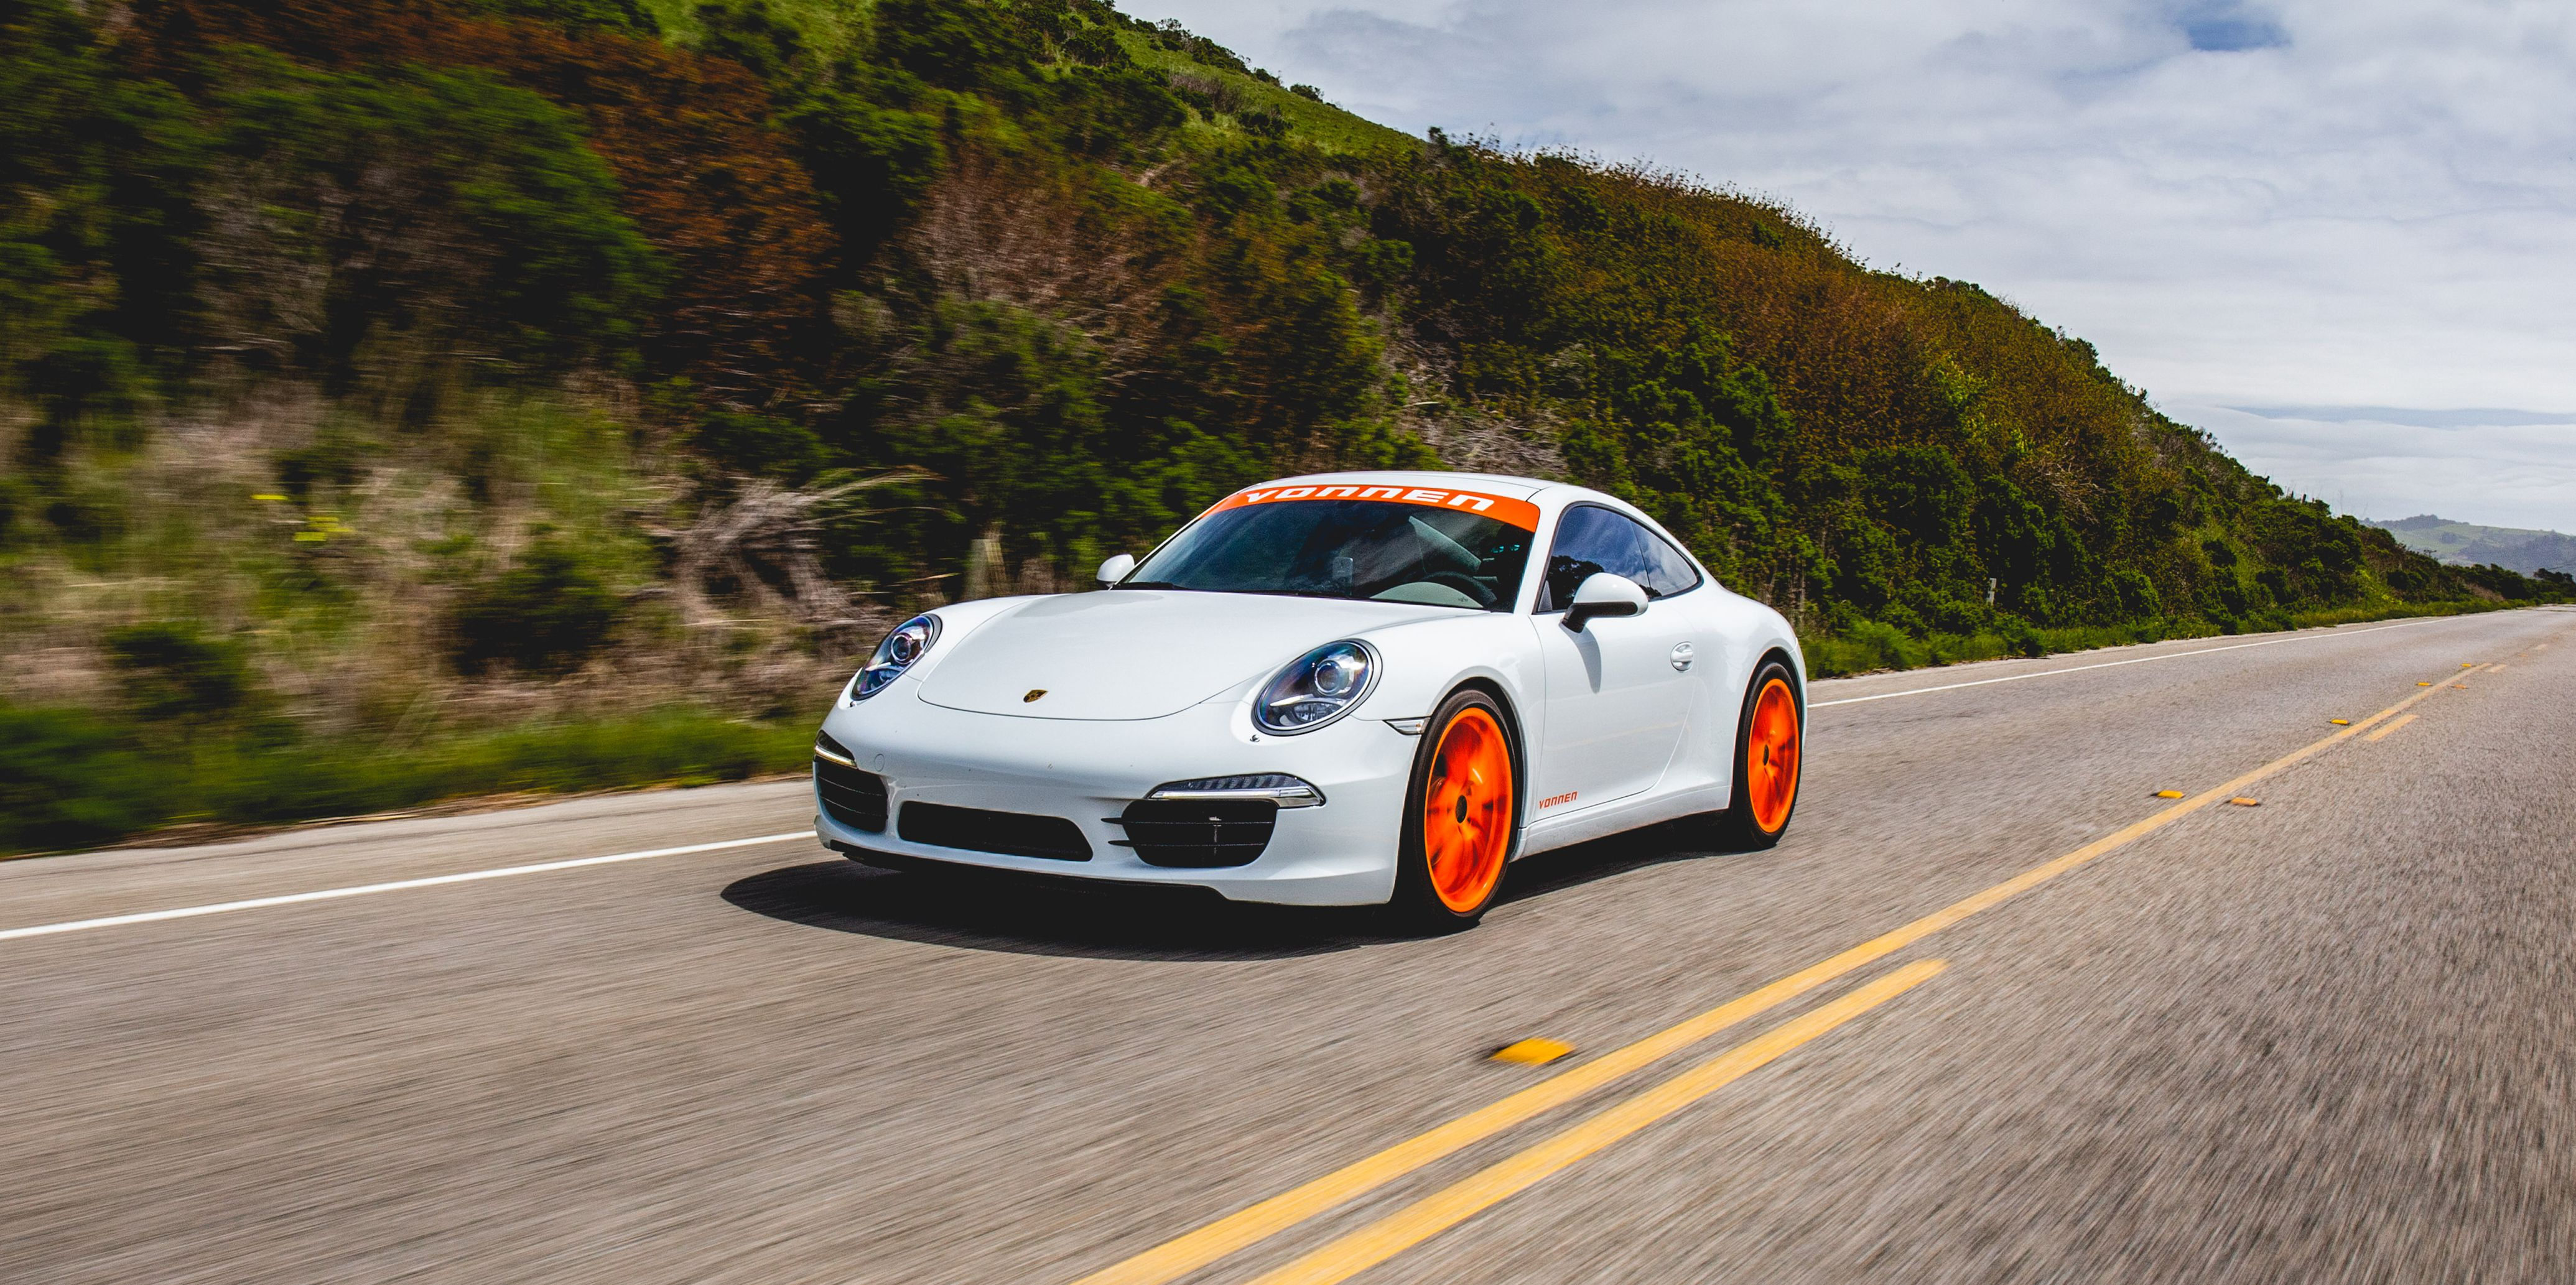 The Vonnen Porsche 911 Hybrid Conversion Channels the 911's Future—At a Big Cost